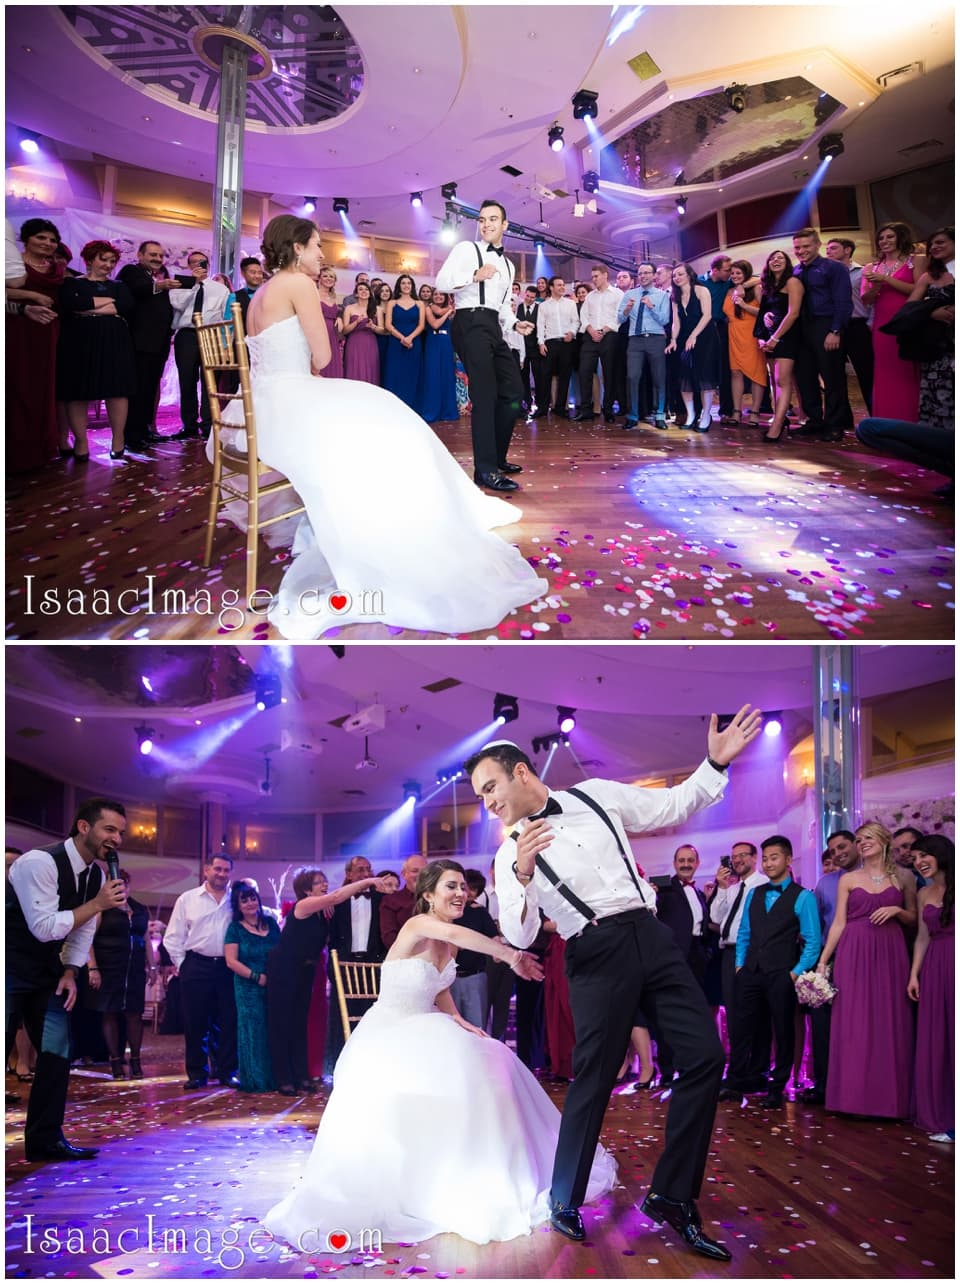 National Restaurant and Banquet Hall Wedding Celebration_7097.jpg